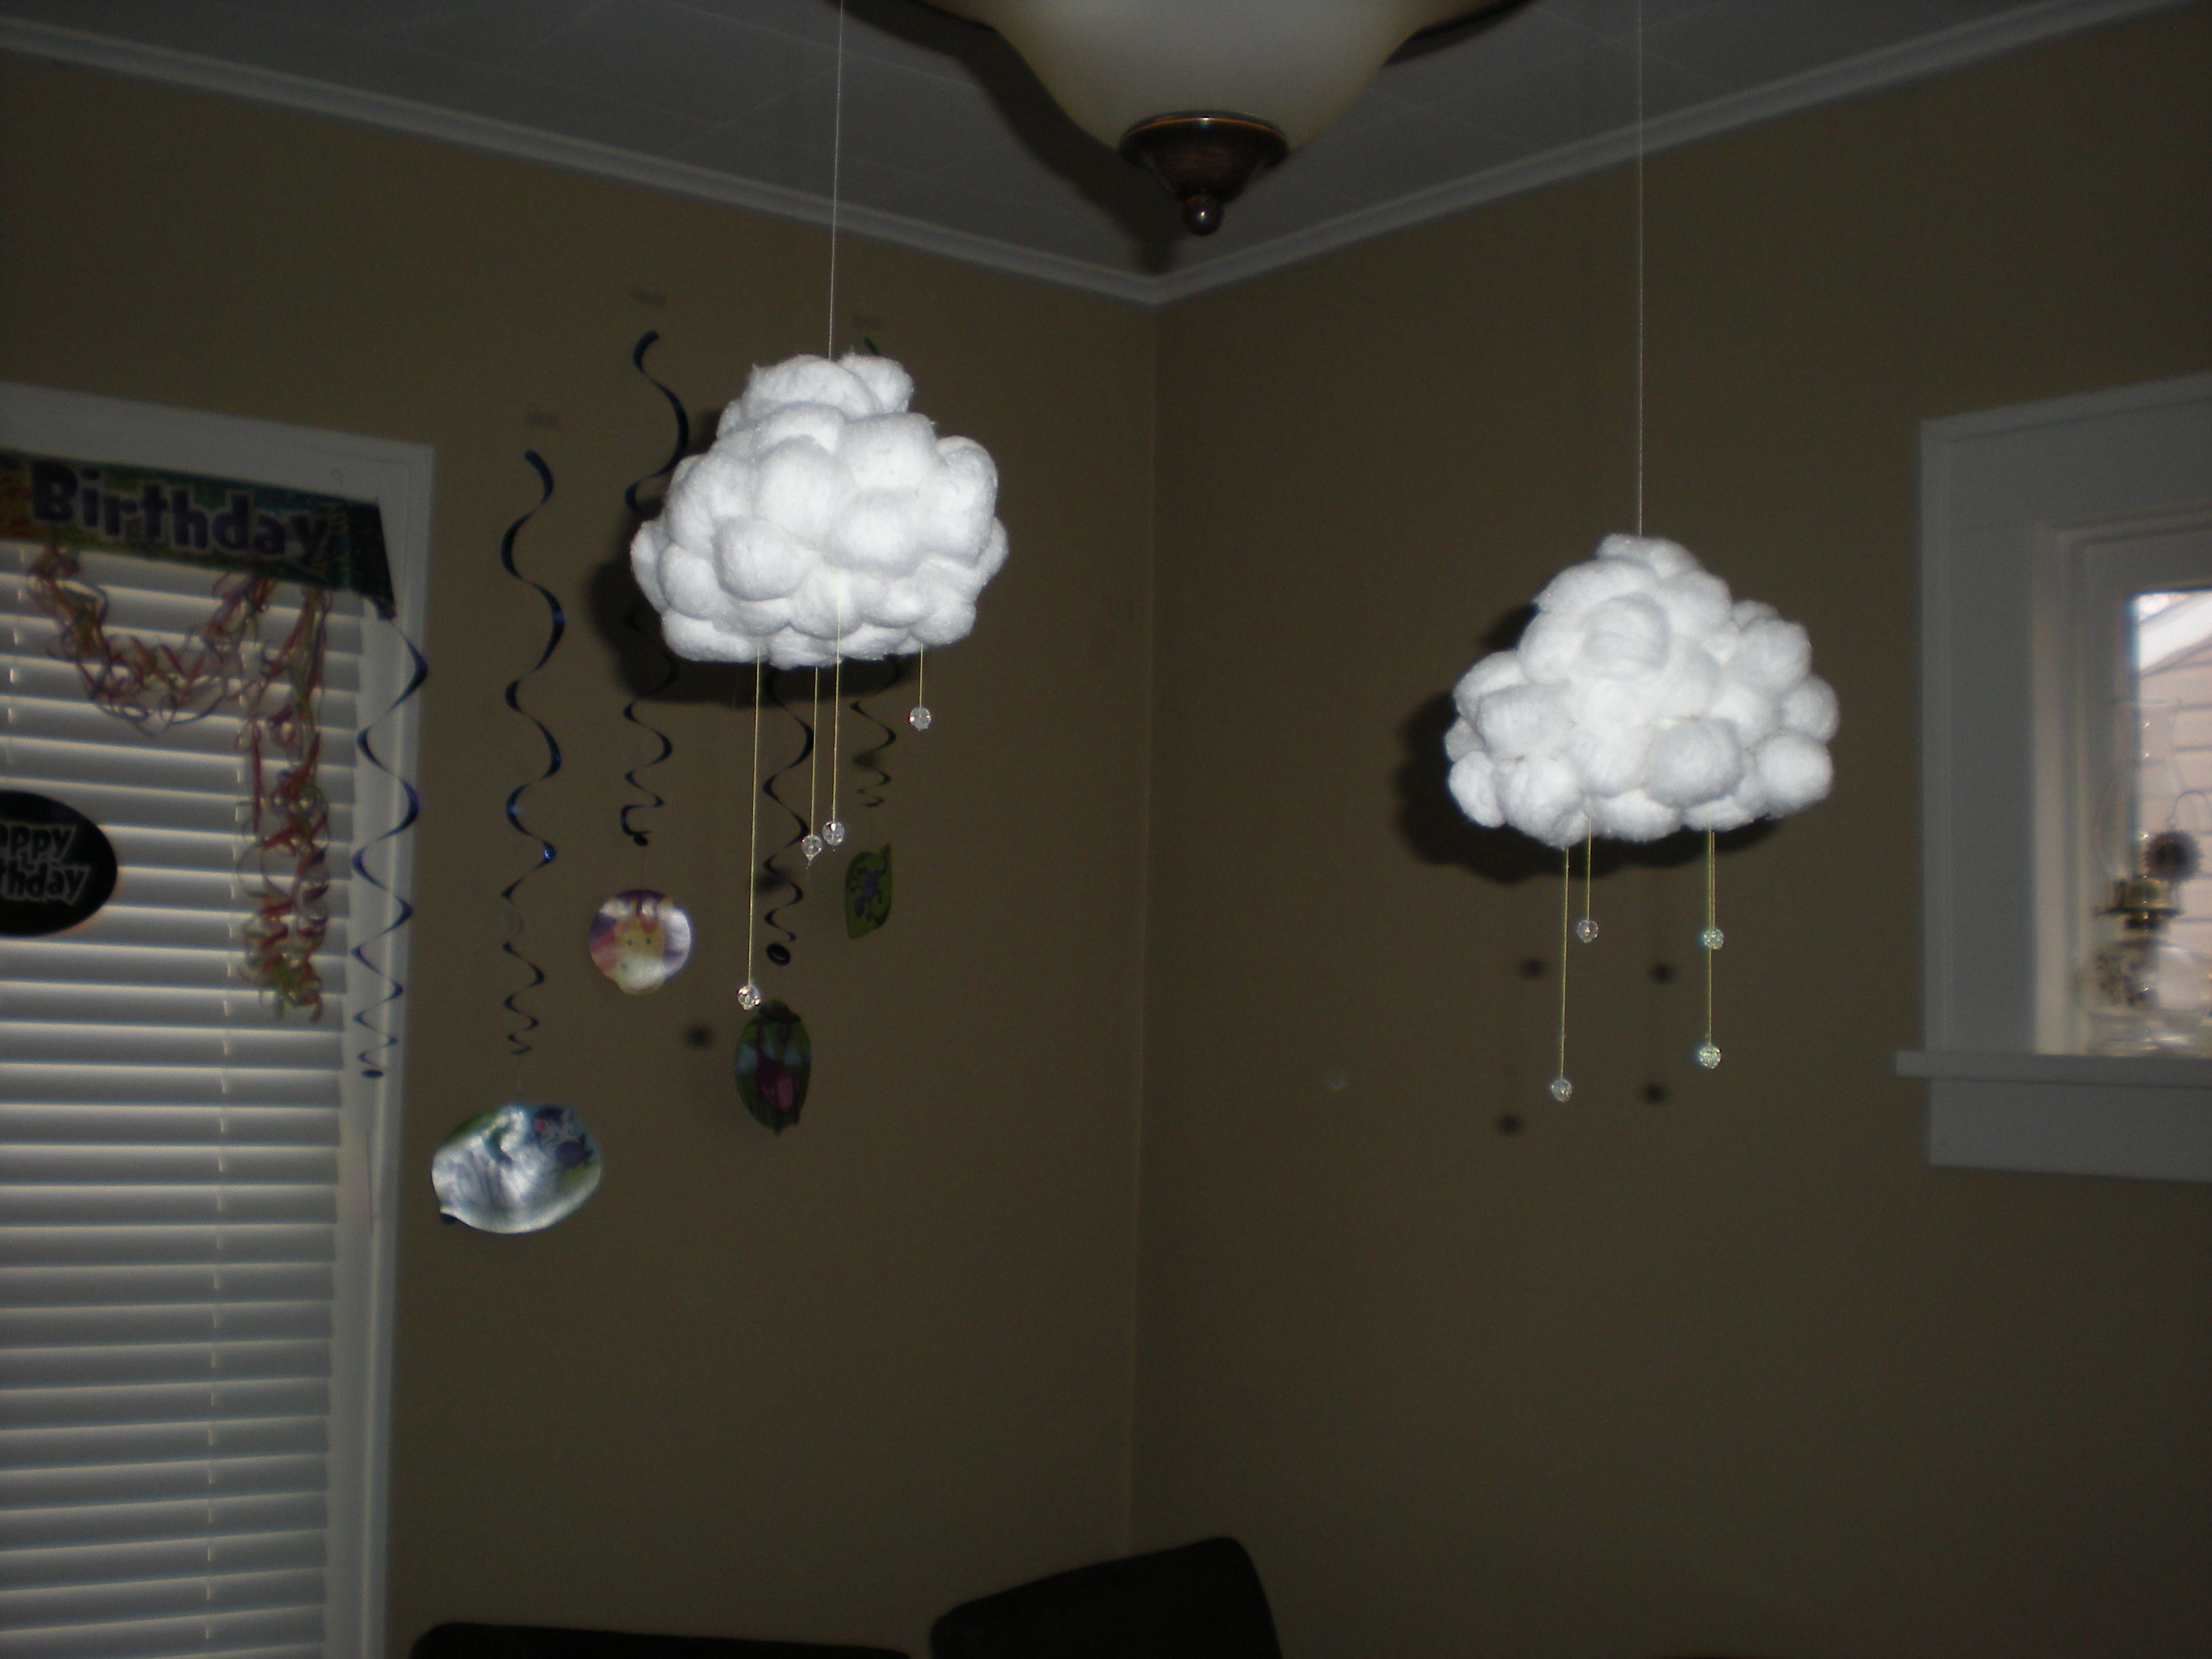 Clouds with rain drops - ping pong balls, cotton balls, thread and glass beads